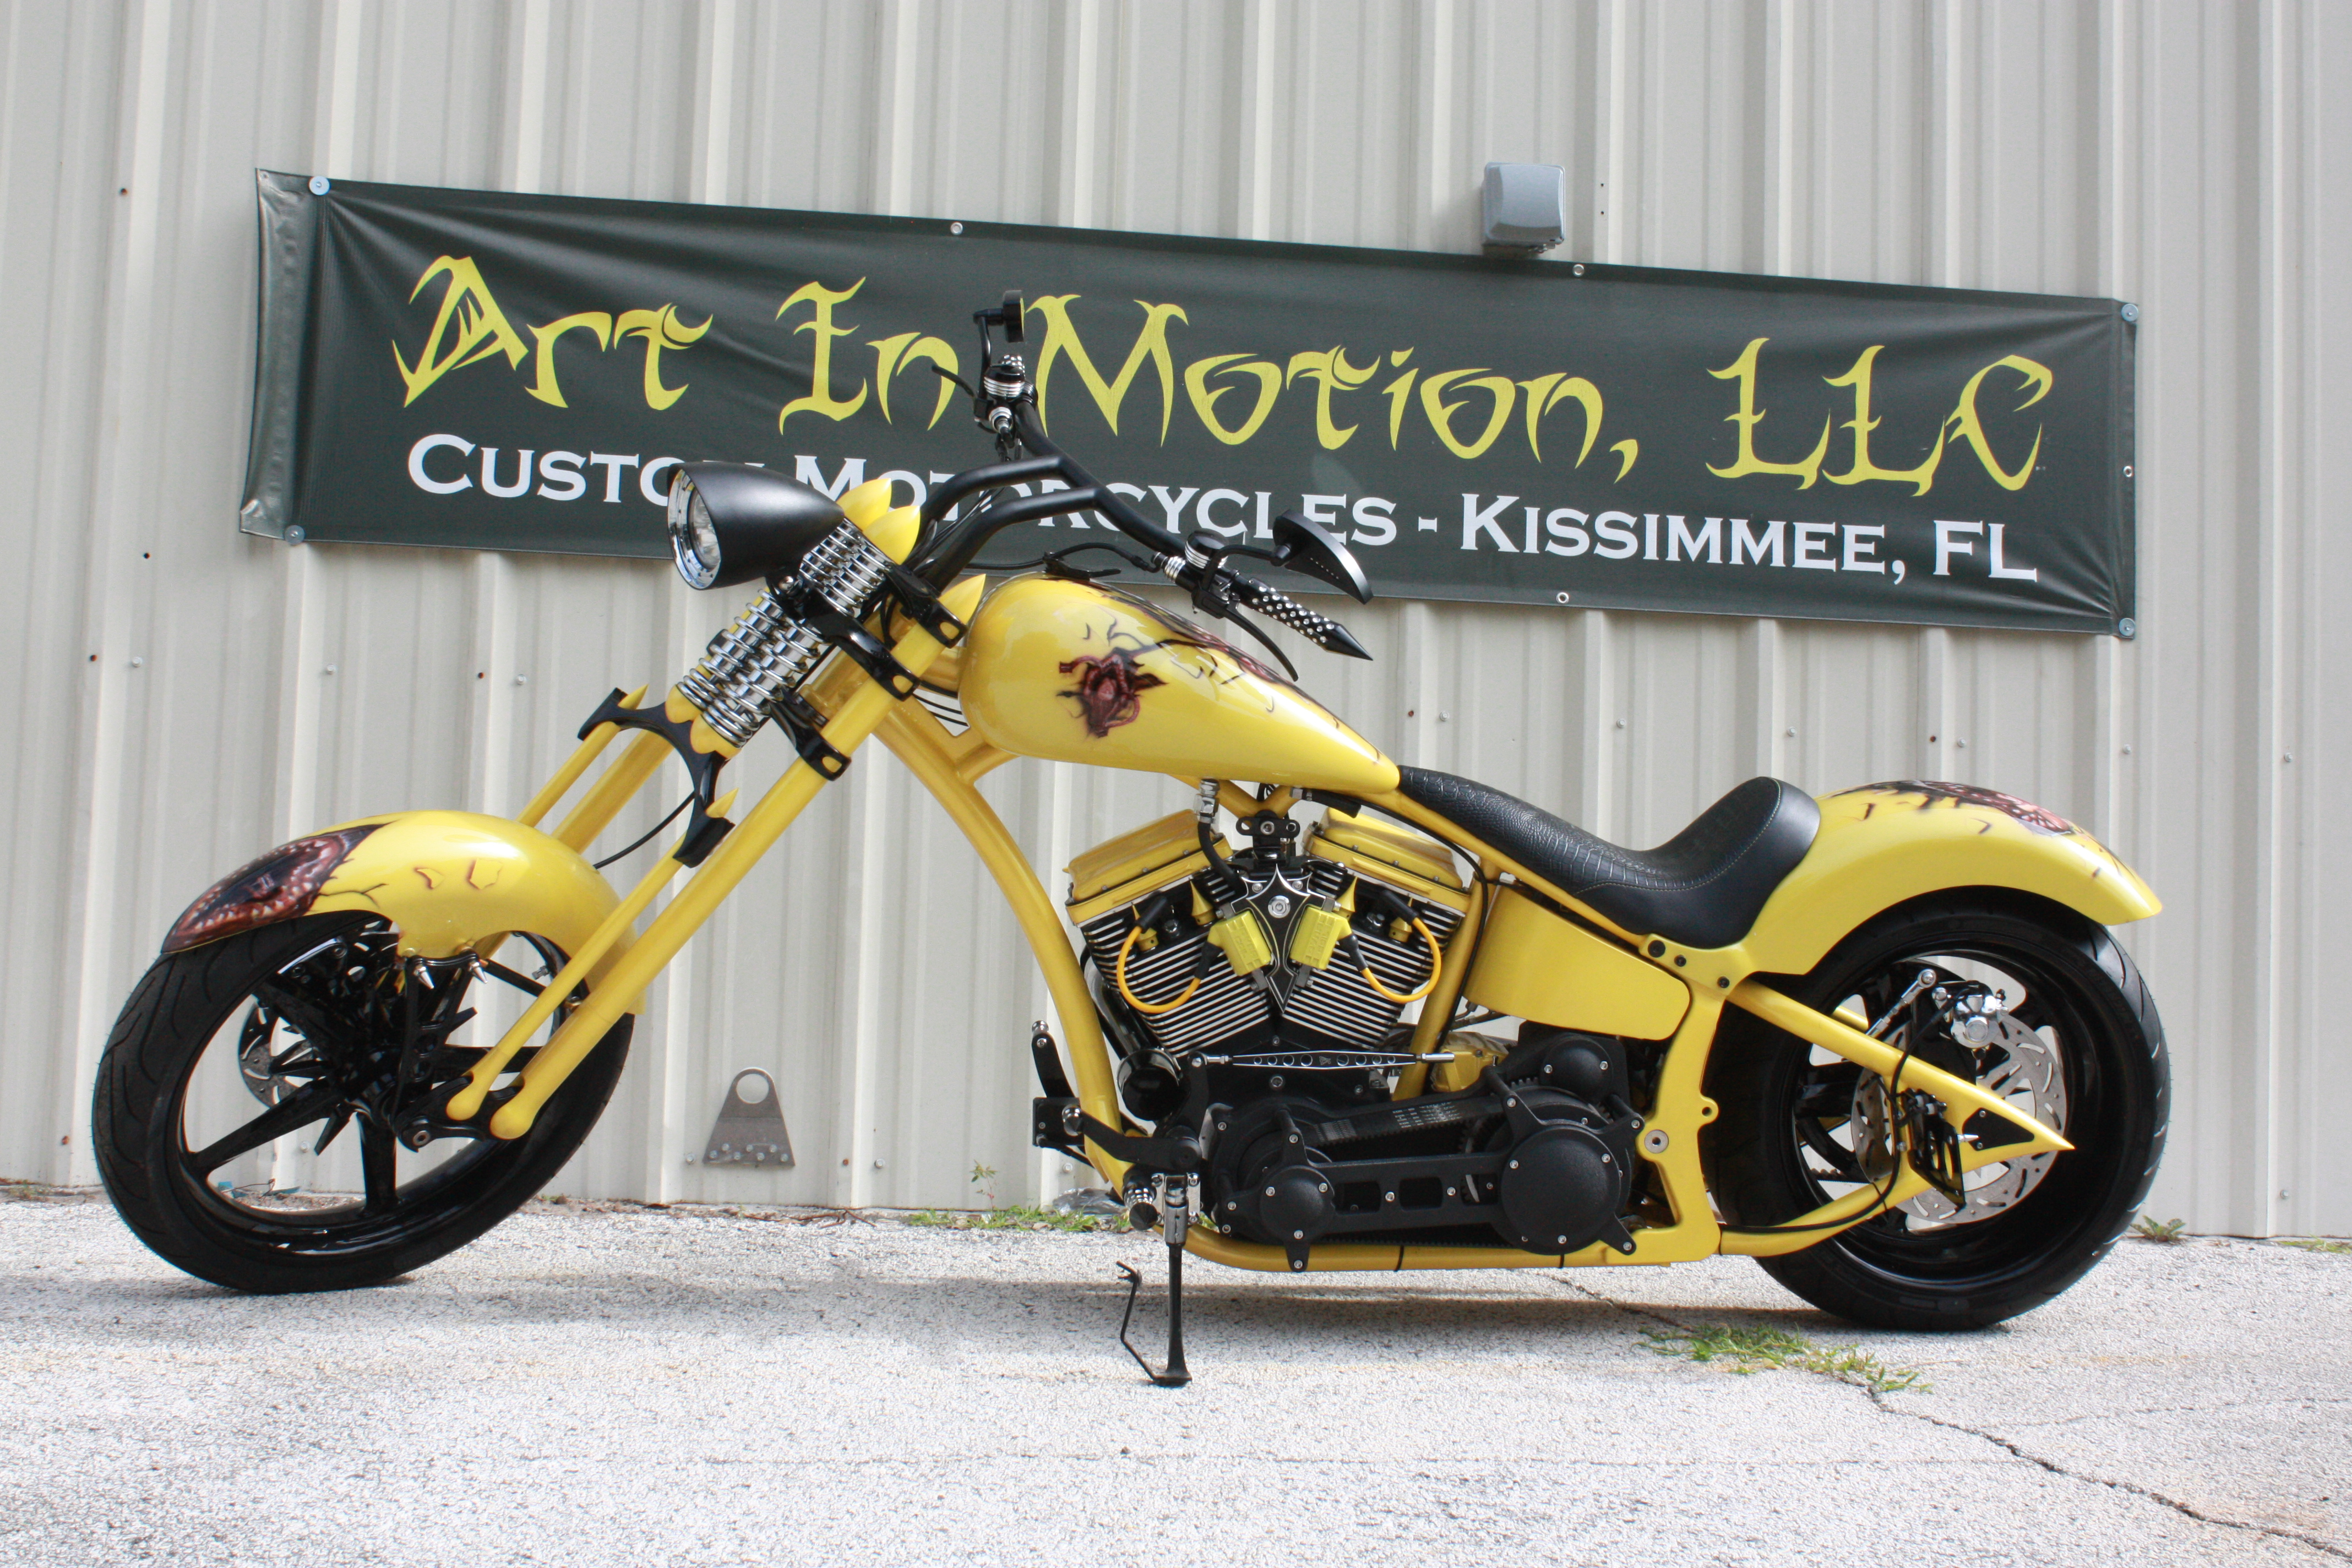 Custom ProStreet Chopper - Title Your Custom Motorcycle